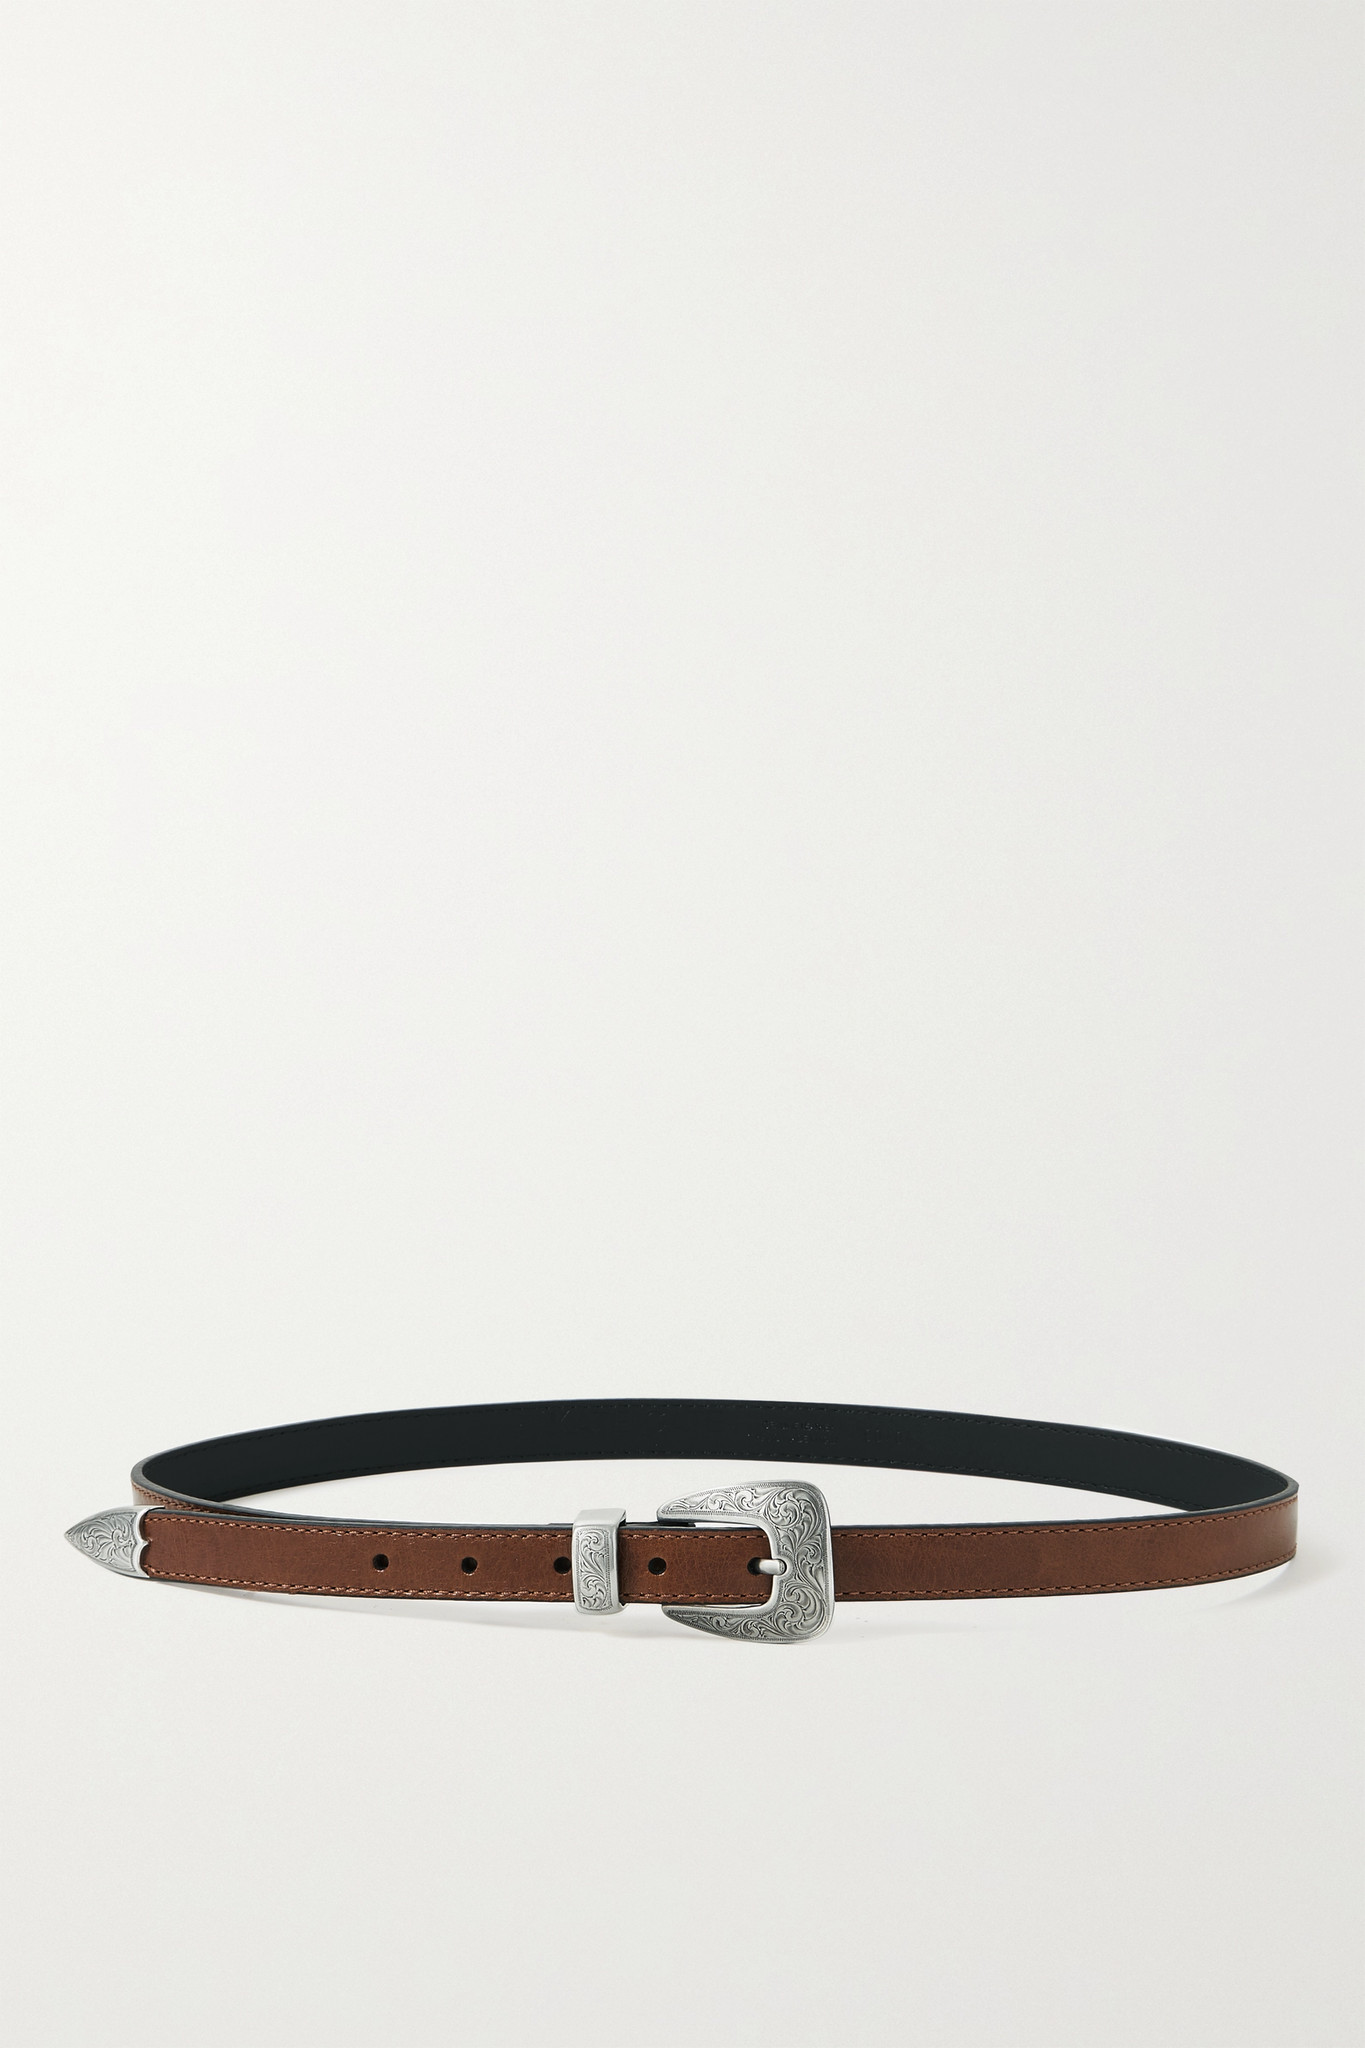 KATE CATE - + Net Sustain Thin Kim Leather Belt - Brown - 70